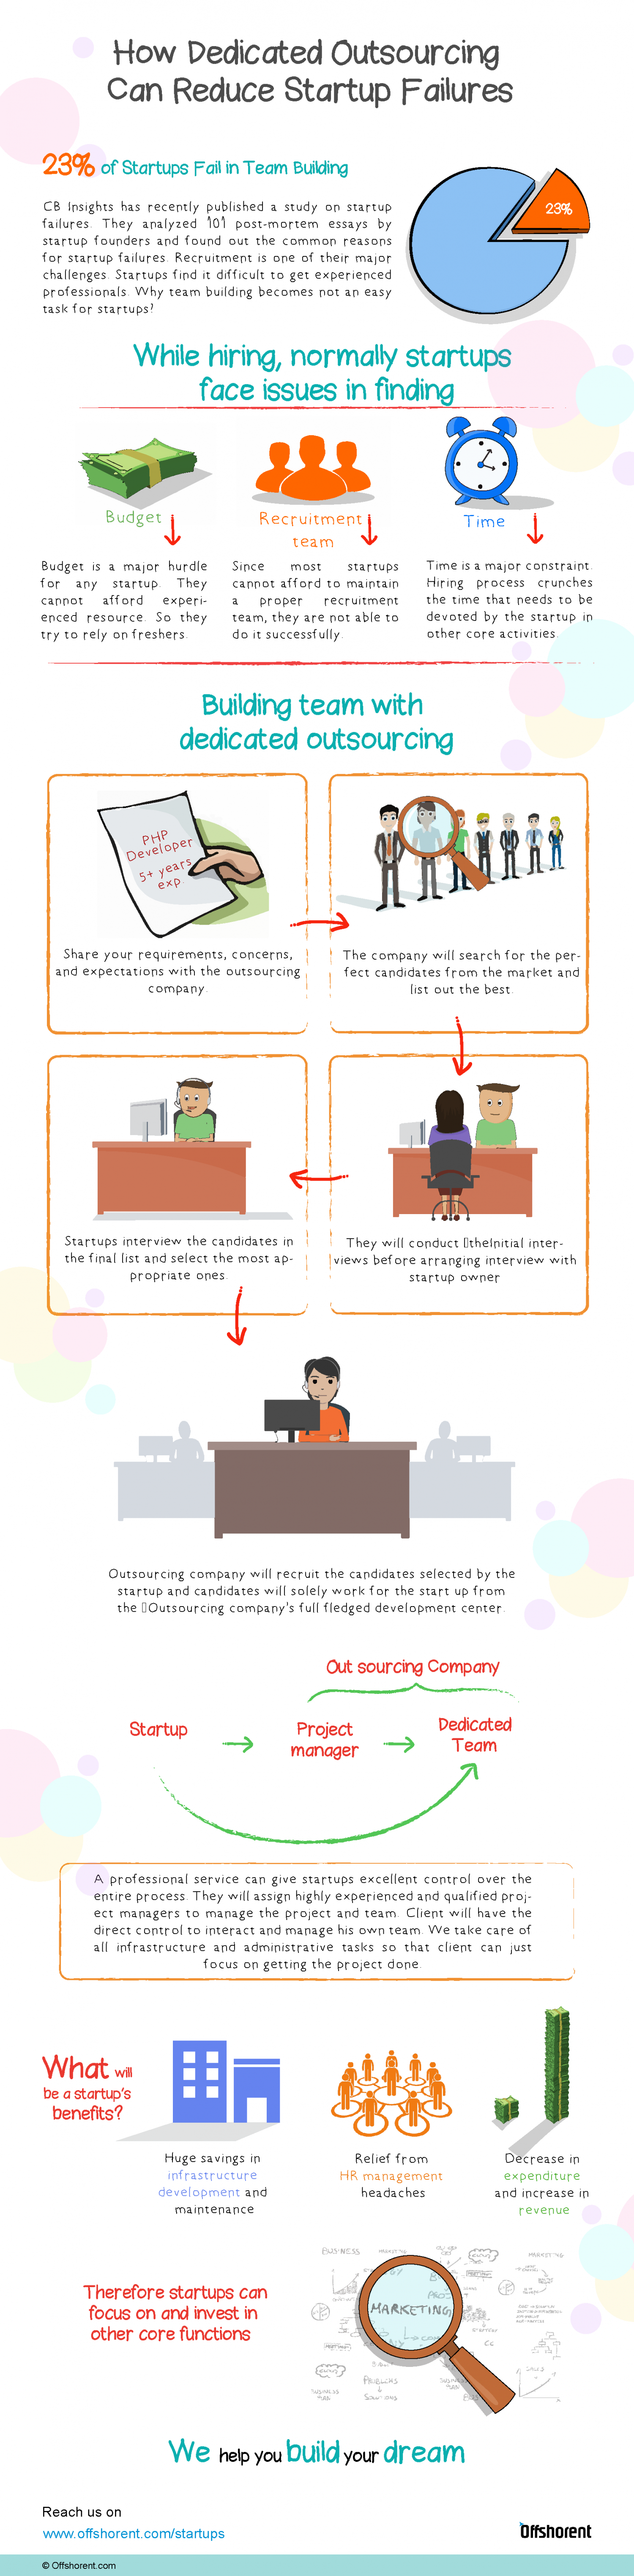 How Dedicated Outsourcing Can Reduce Startup Failures Infographic